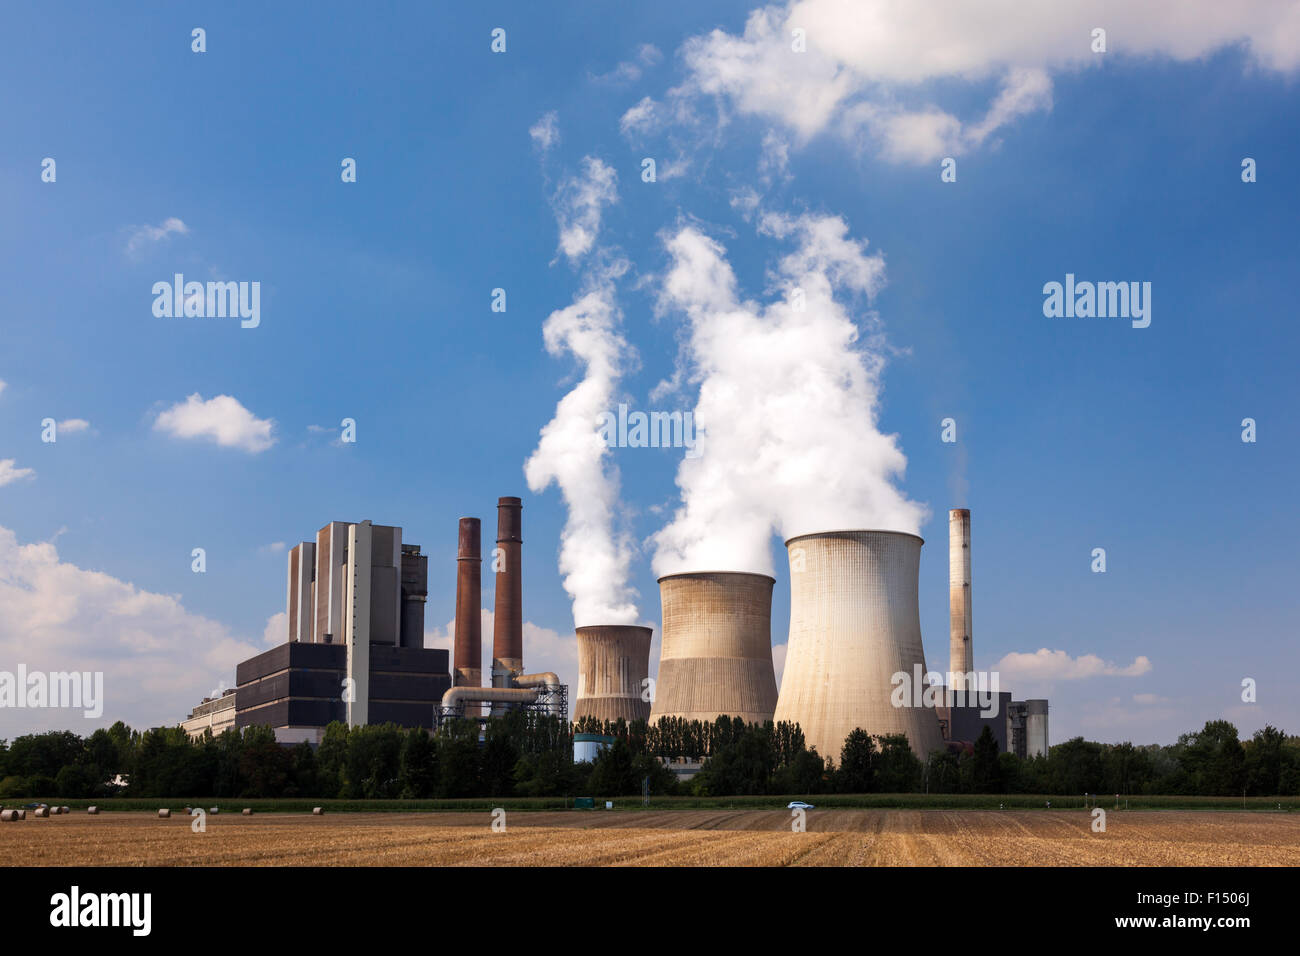 Cooling towers of a nuclear power station - Stock Image